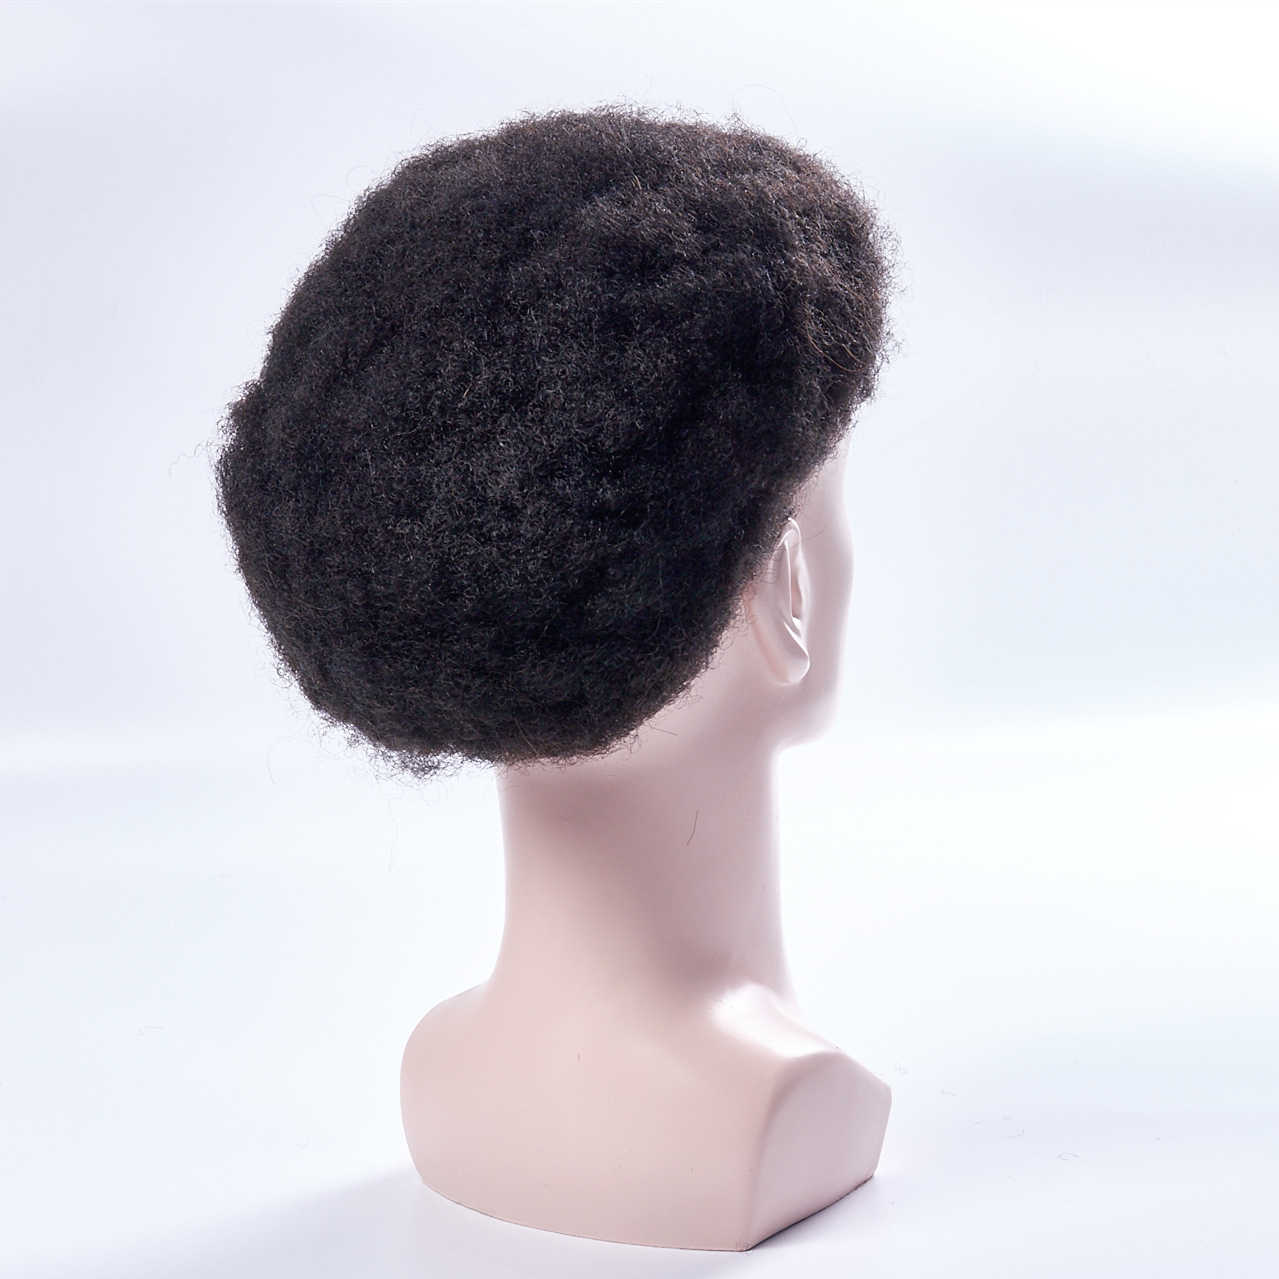 Mens Toupee Wig Full Lace Afro Kinky Curly Replacement Hair System Handmade Hairpieces Indian Human Remy Hair 6 Inch